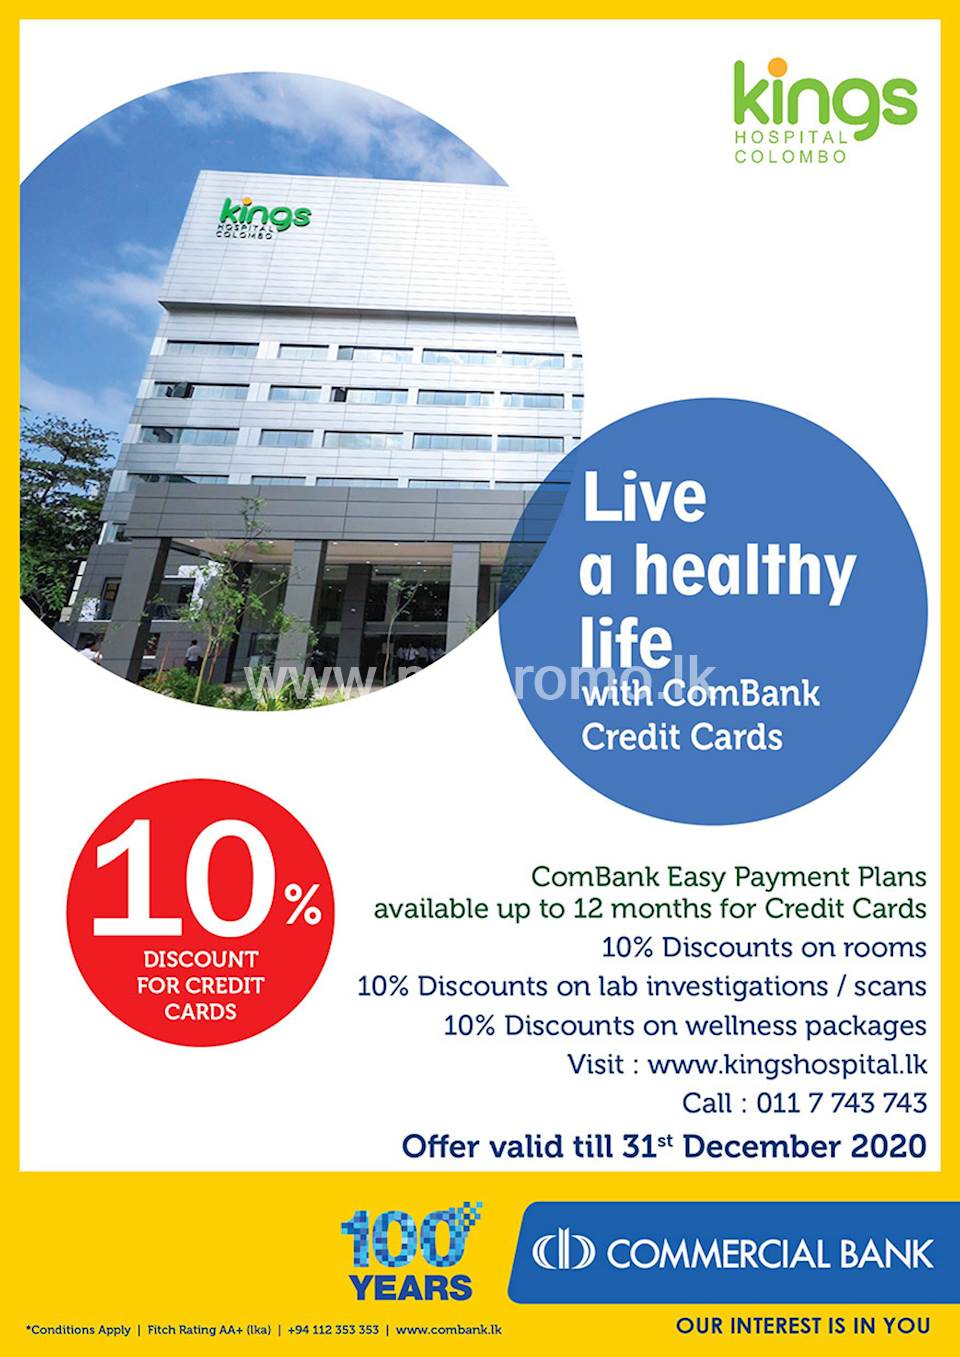 10 % discount for ComBank Credit Cards at Kings Hospital